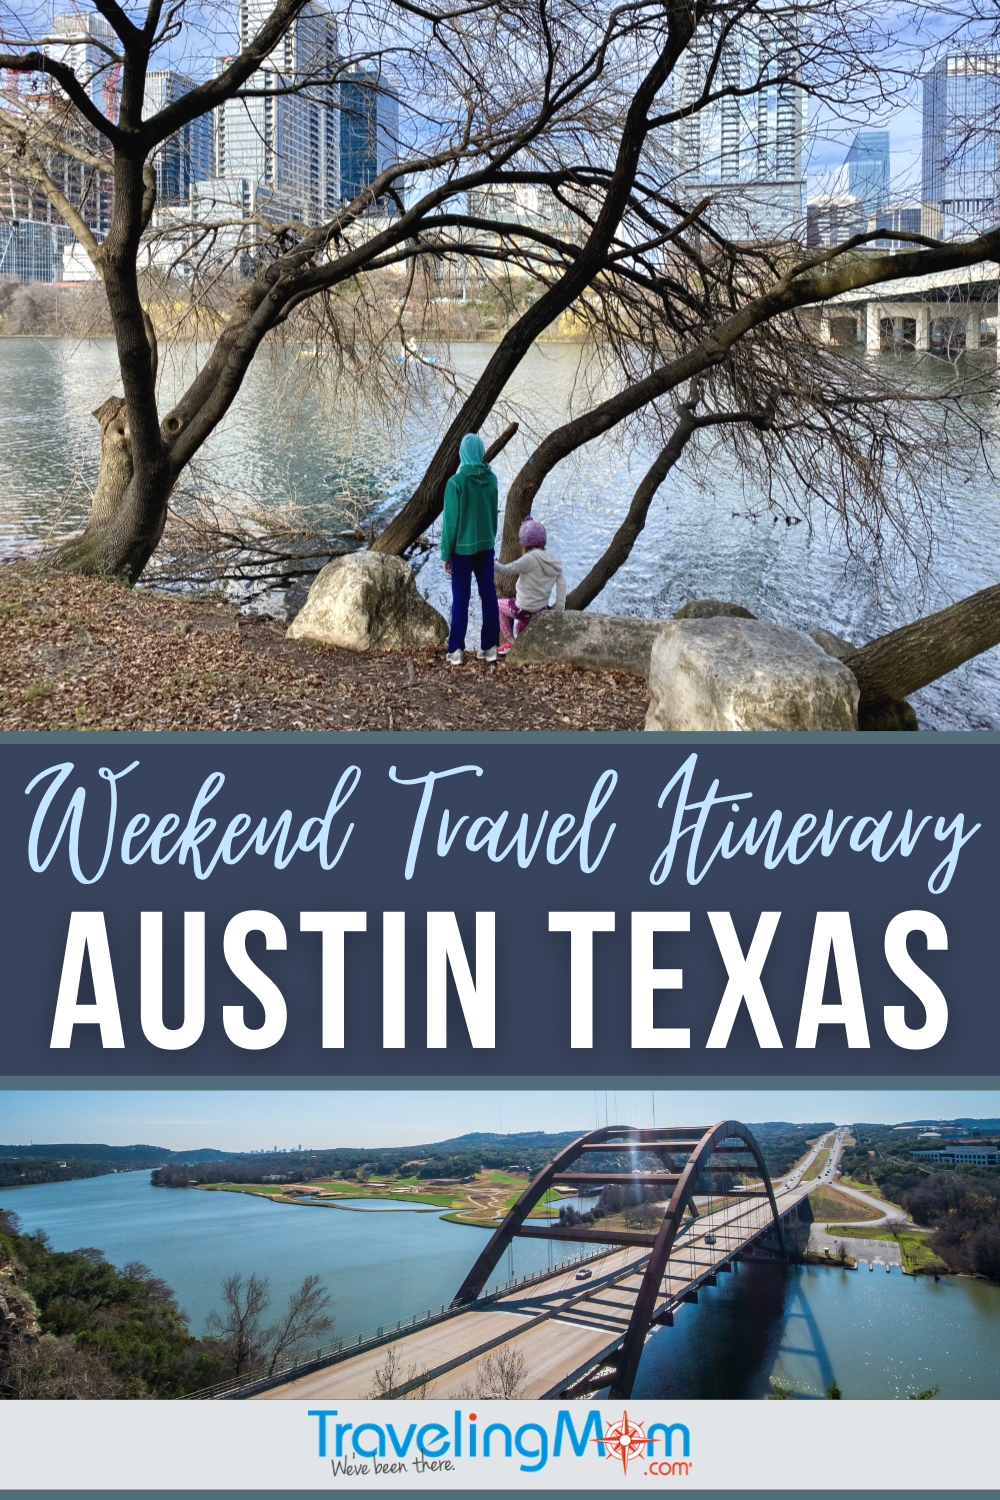 pin image with text weekend travel itinerary austin texas top image of kids at park bottom image of bridge over river